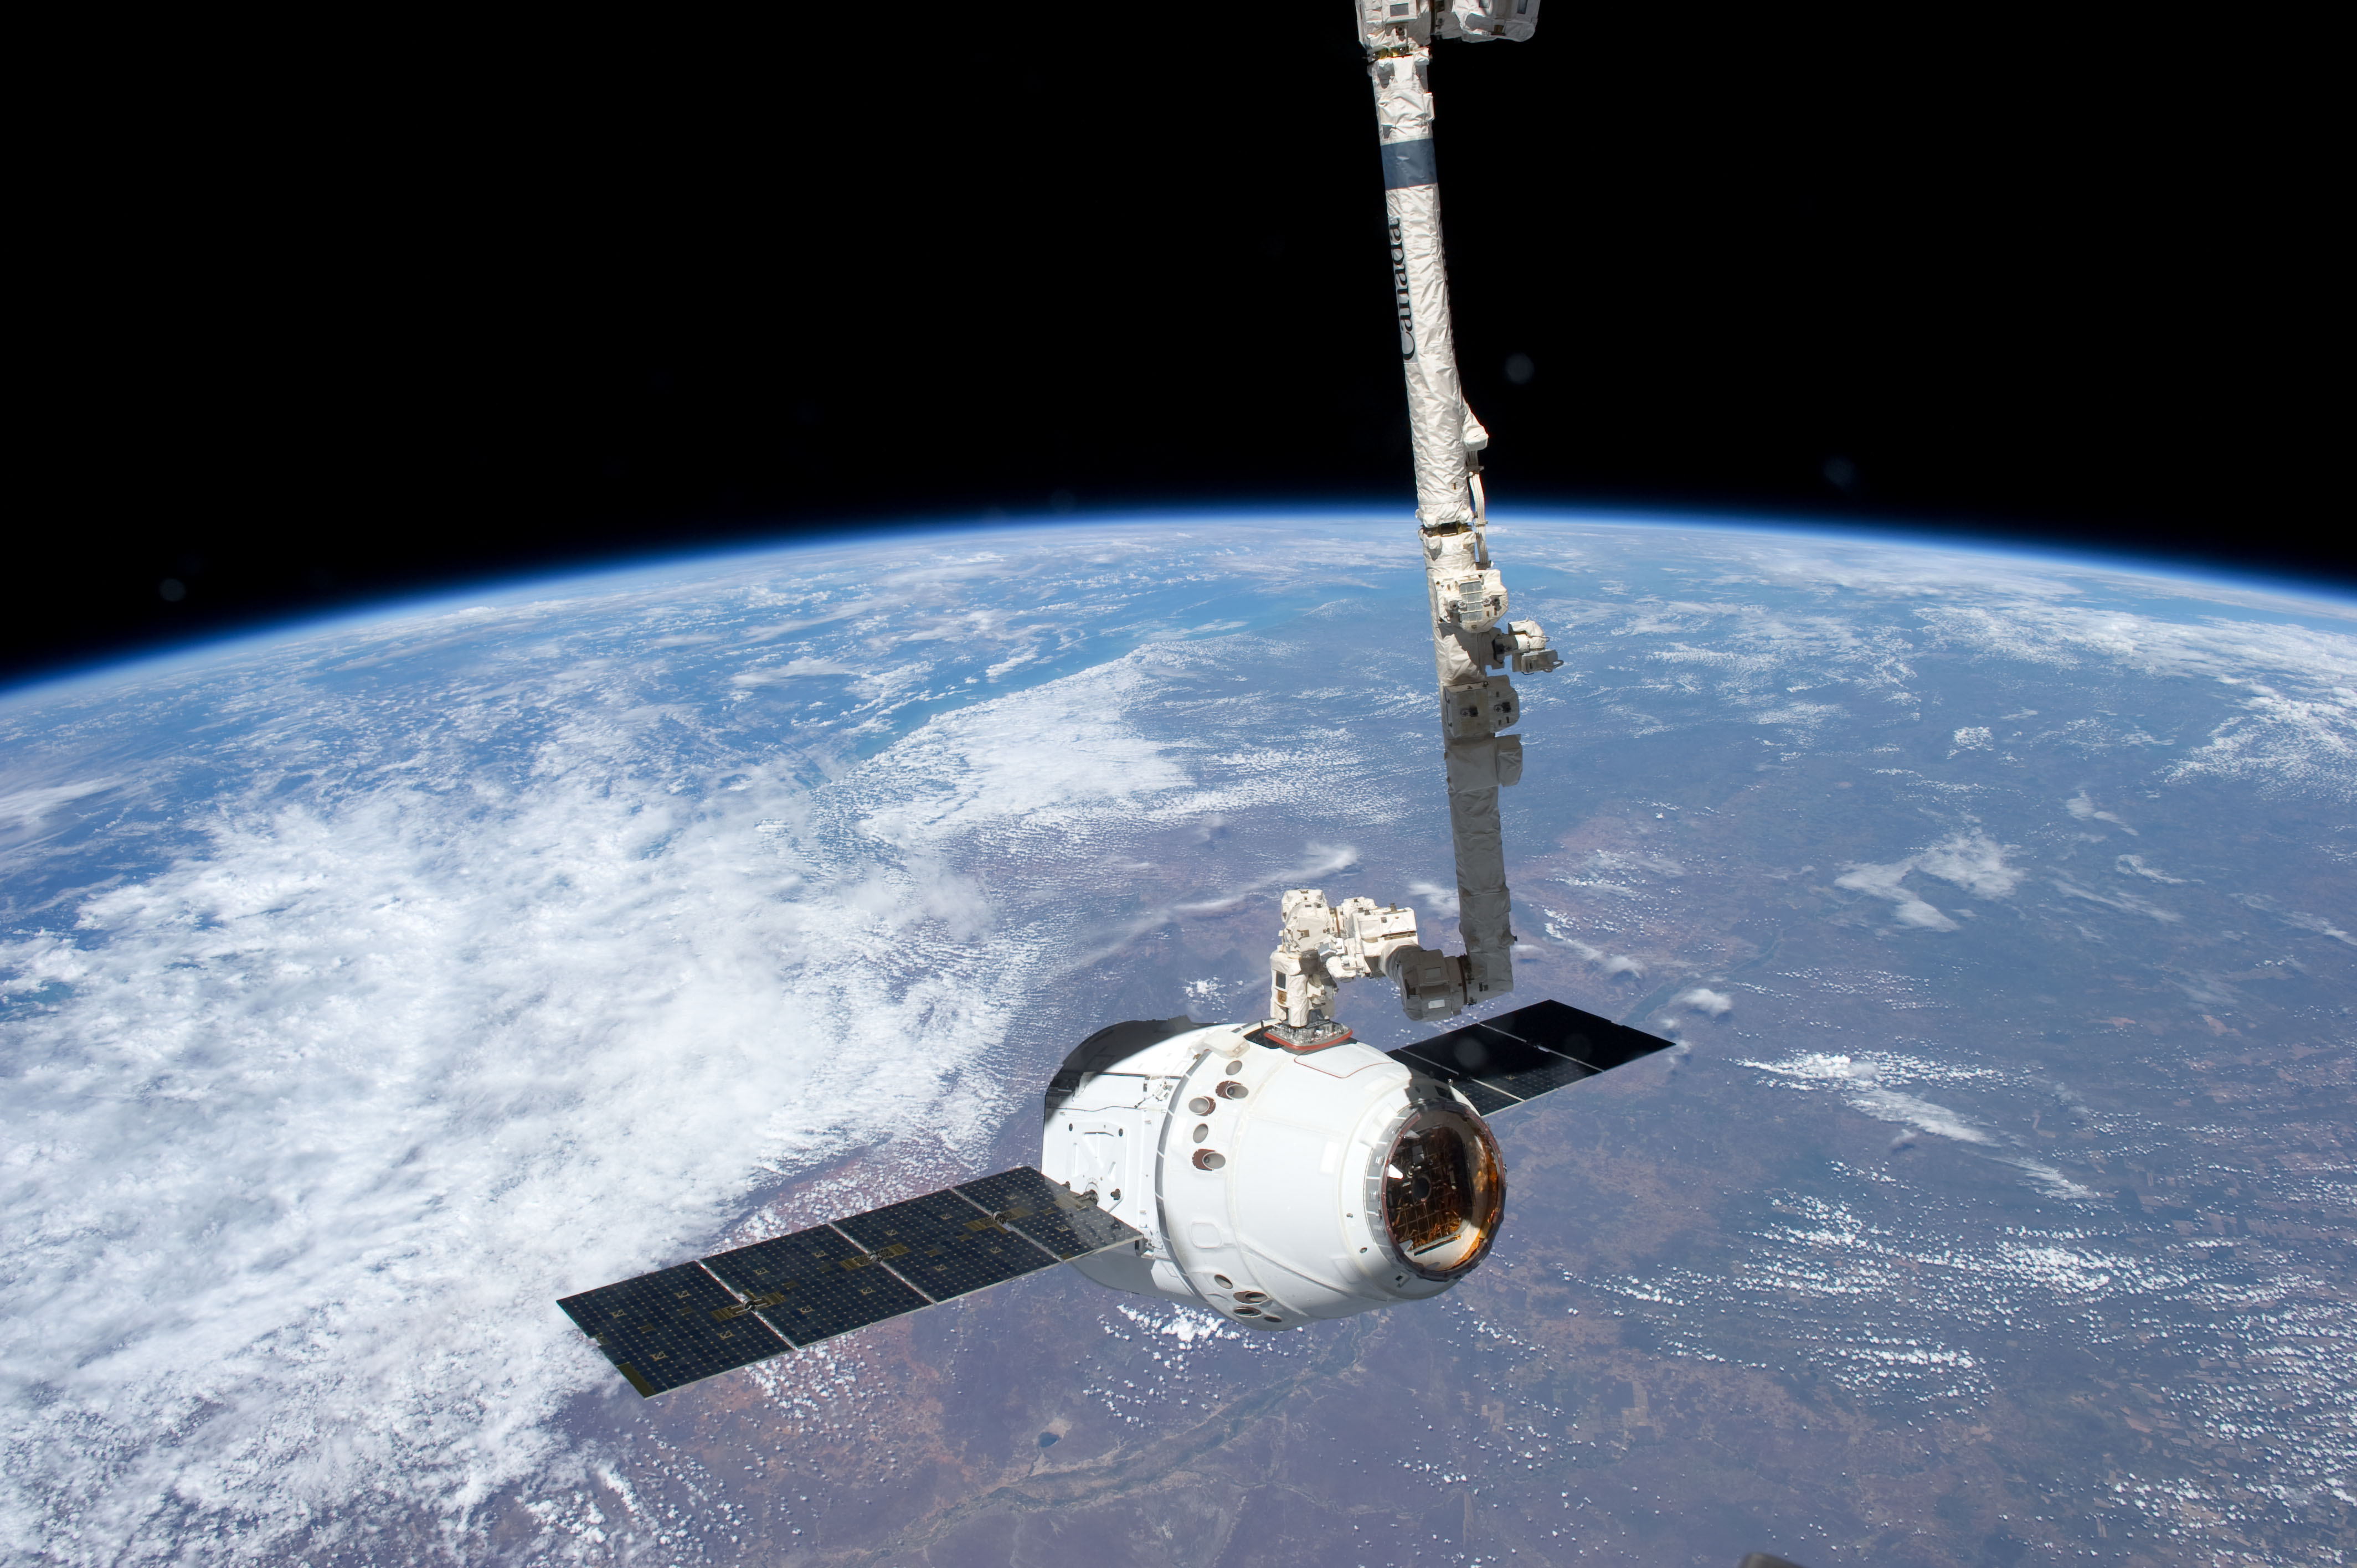 spacex dragon is grappled by canadarm2